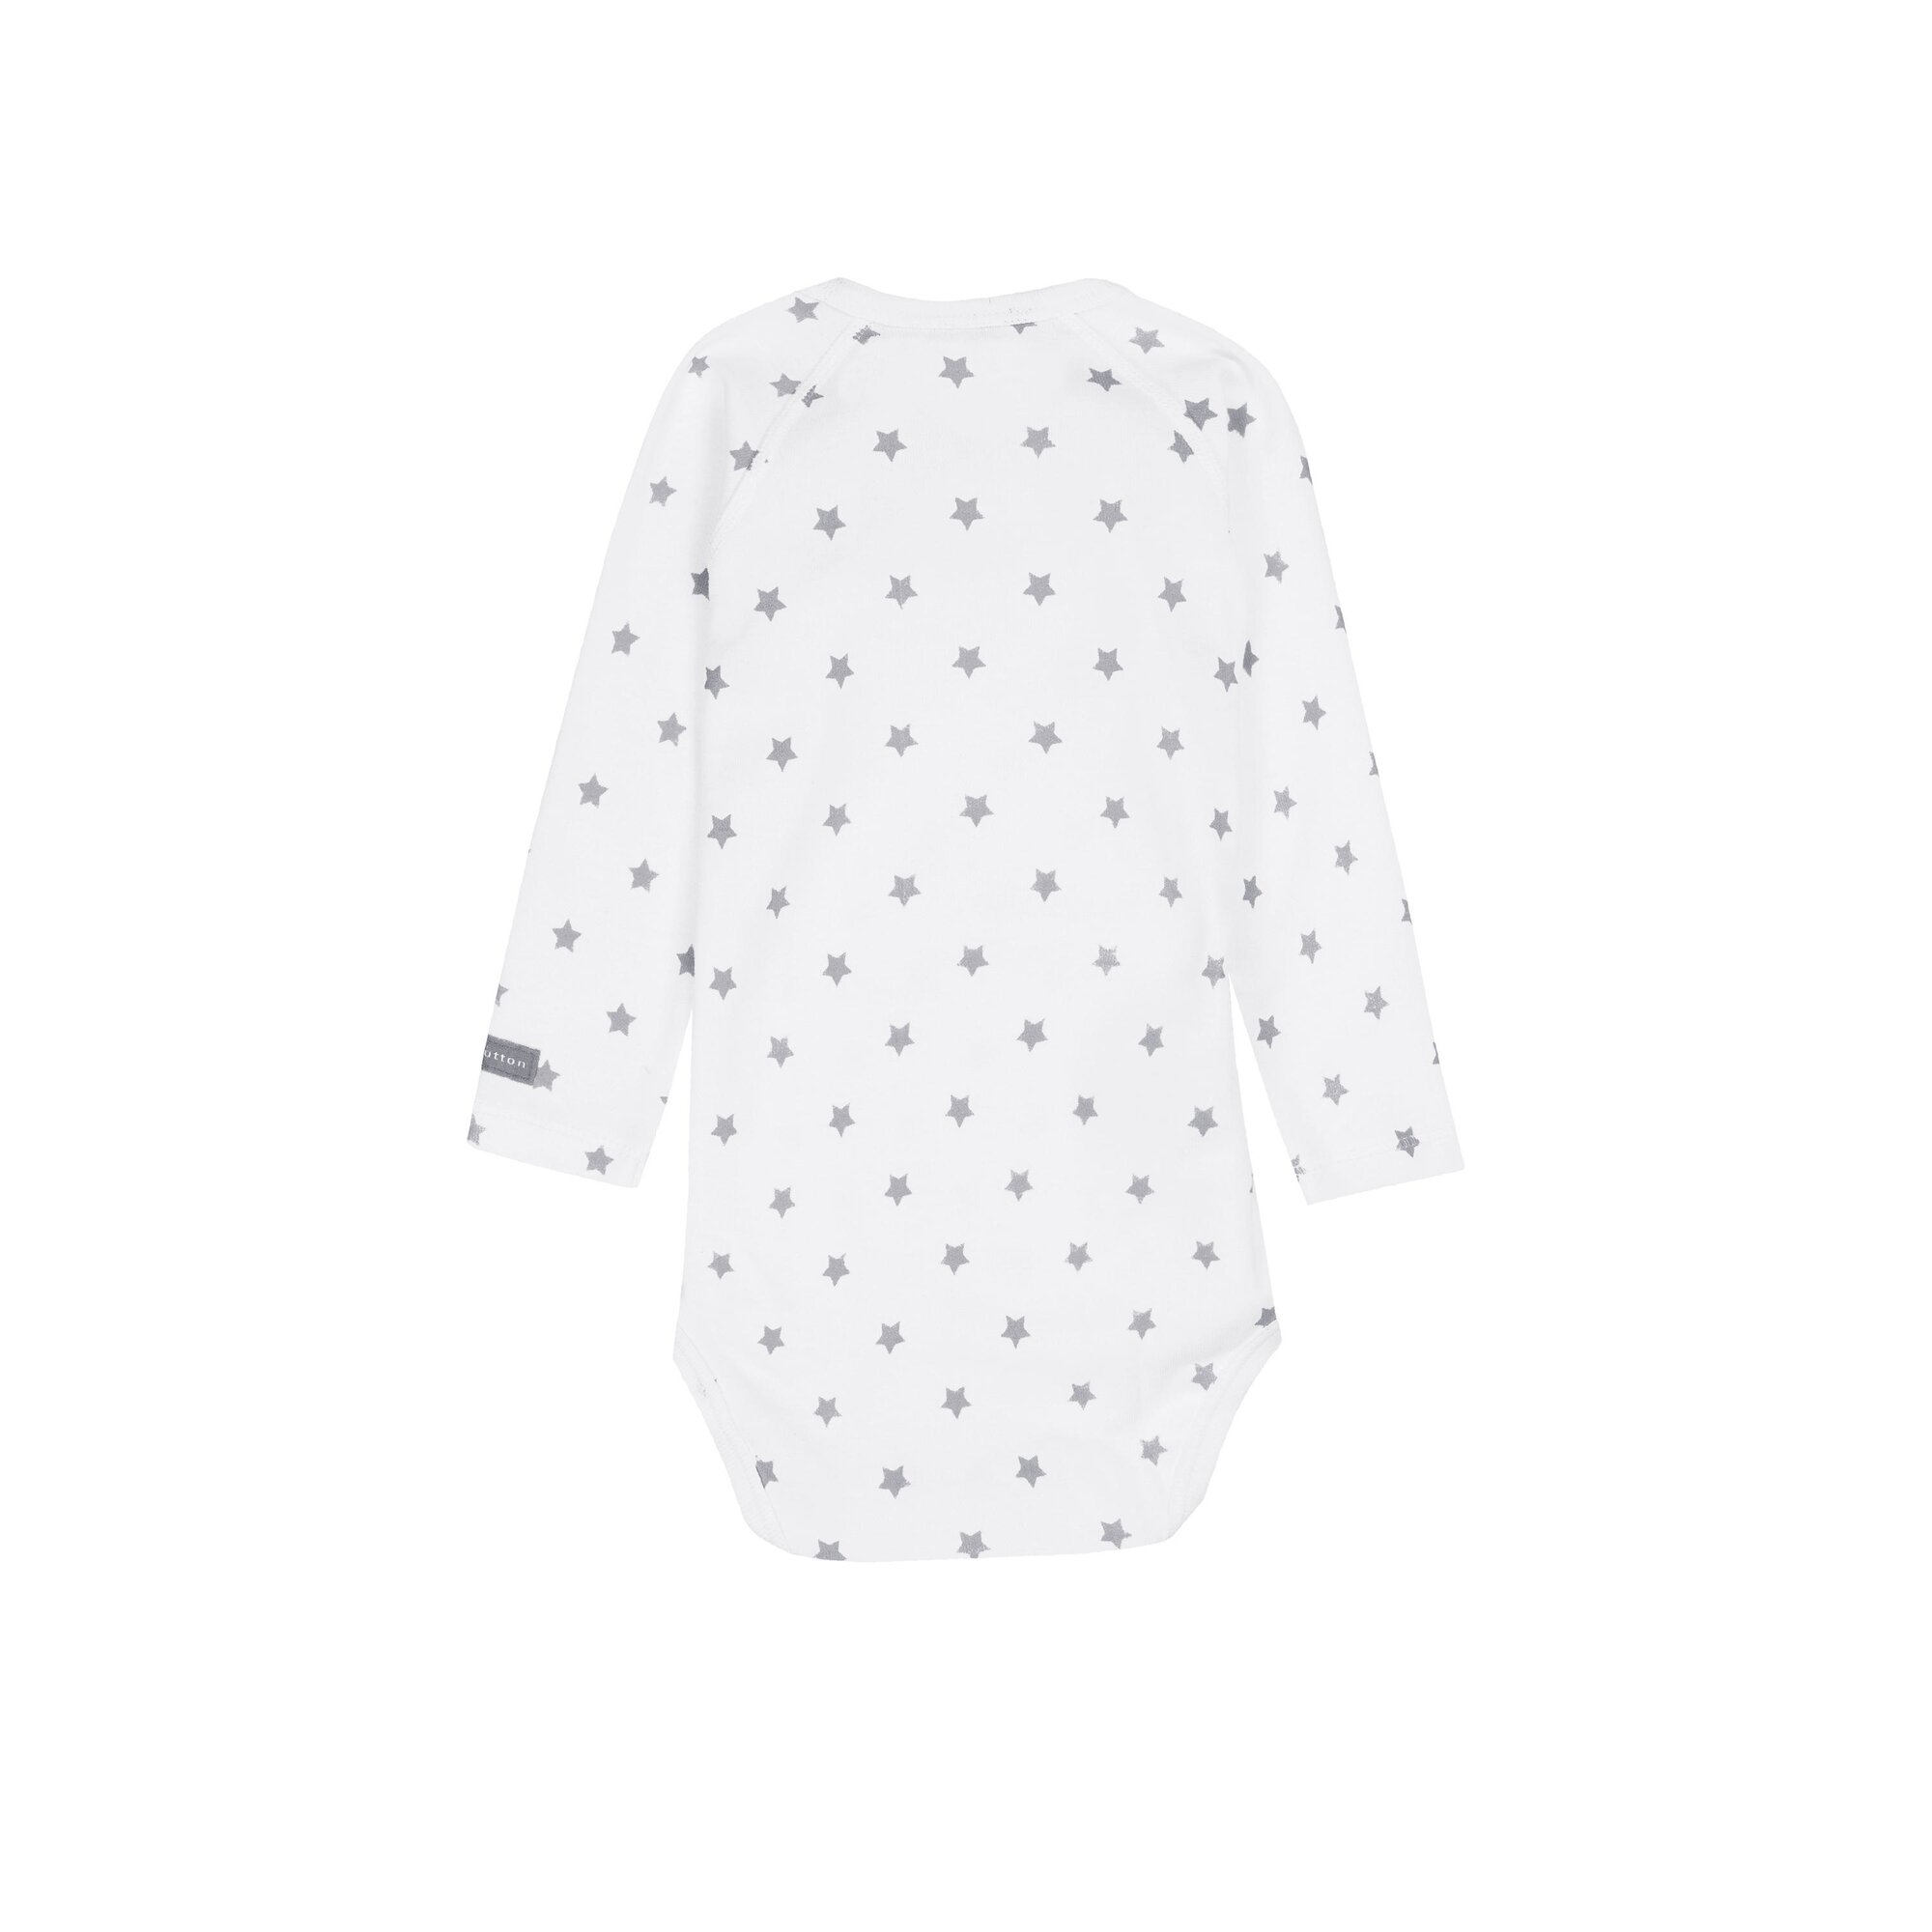 bellybutton-wickelbody-1-1-arm, 19.95 EUR @ babywalz-de